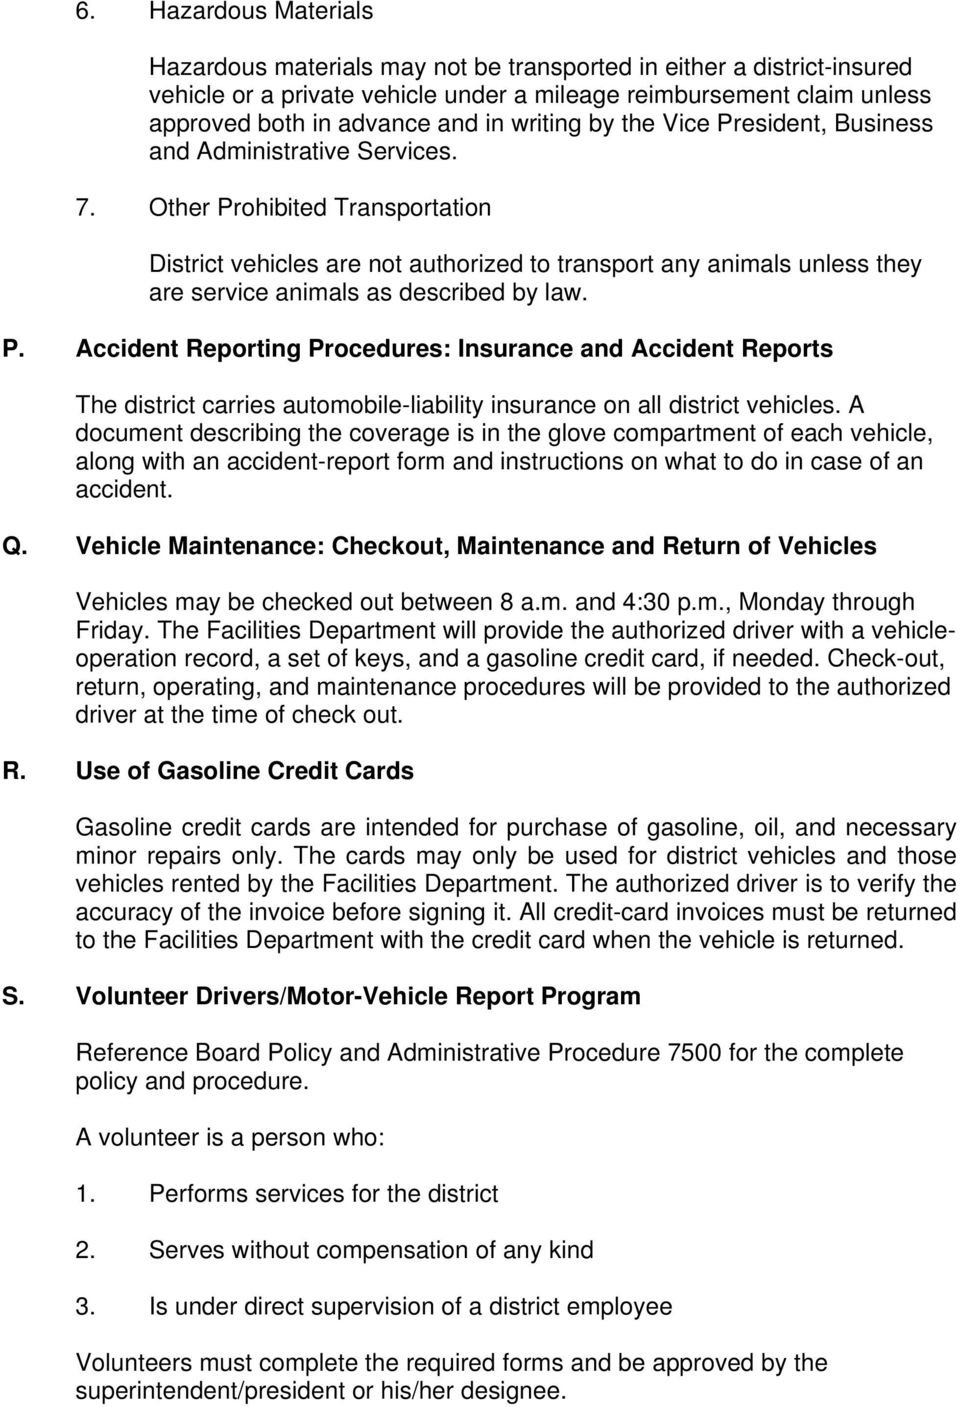 Other Prohibited Transportation District vehicles are not authorized to transport any animals unless they are service animals as described by law. P. Accident Reporting Procedures: Insurance and Accident Reports The district carries automobile-liability insurance on all district vehicles.